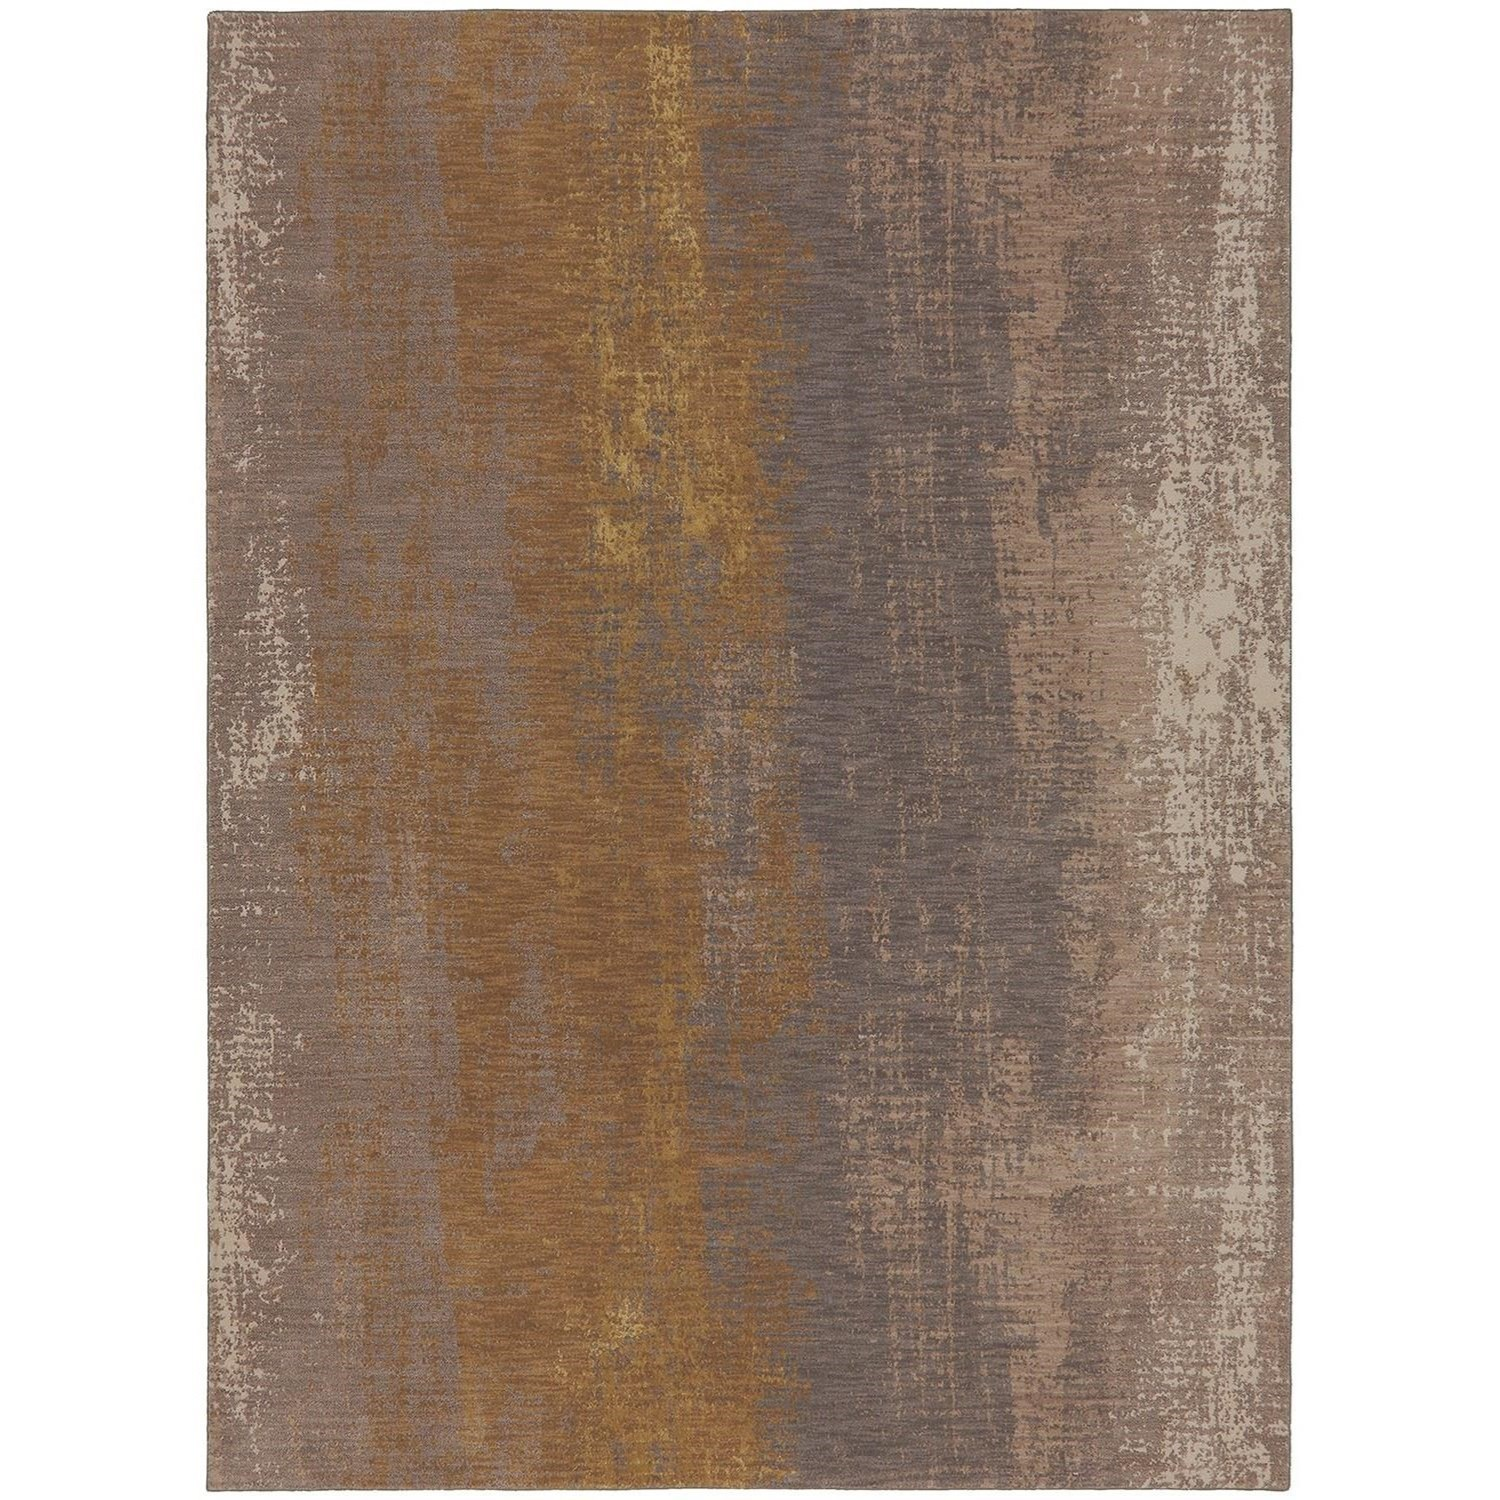 Enigma 8'x11' Rectangle Abstract Area Rug by Karastan Rugs at Alison Craig Home Furnishings